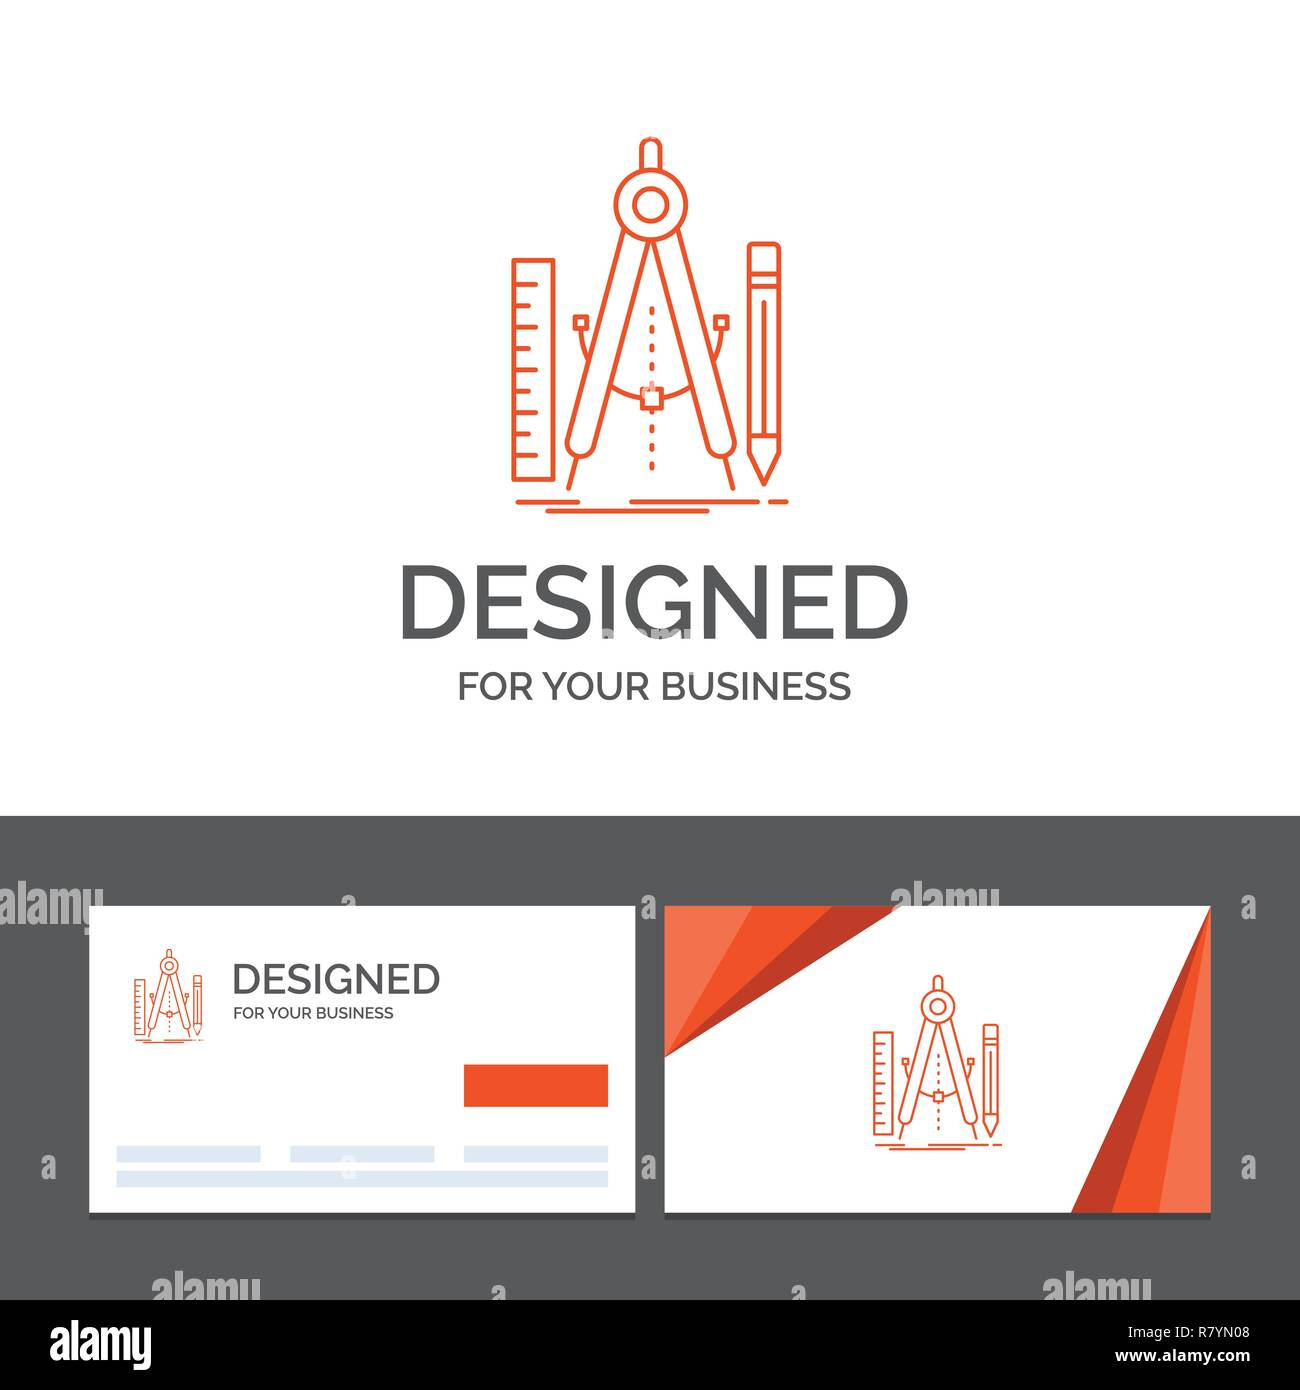 Business logo template for Build, design, geometry, math, tool. Orange Visiting Cards with Brand logo template - Stock Vector